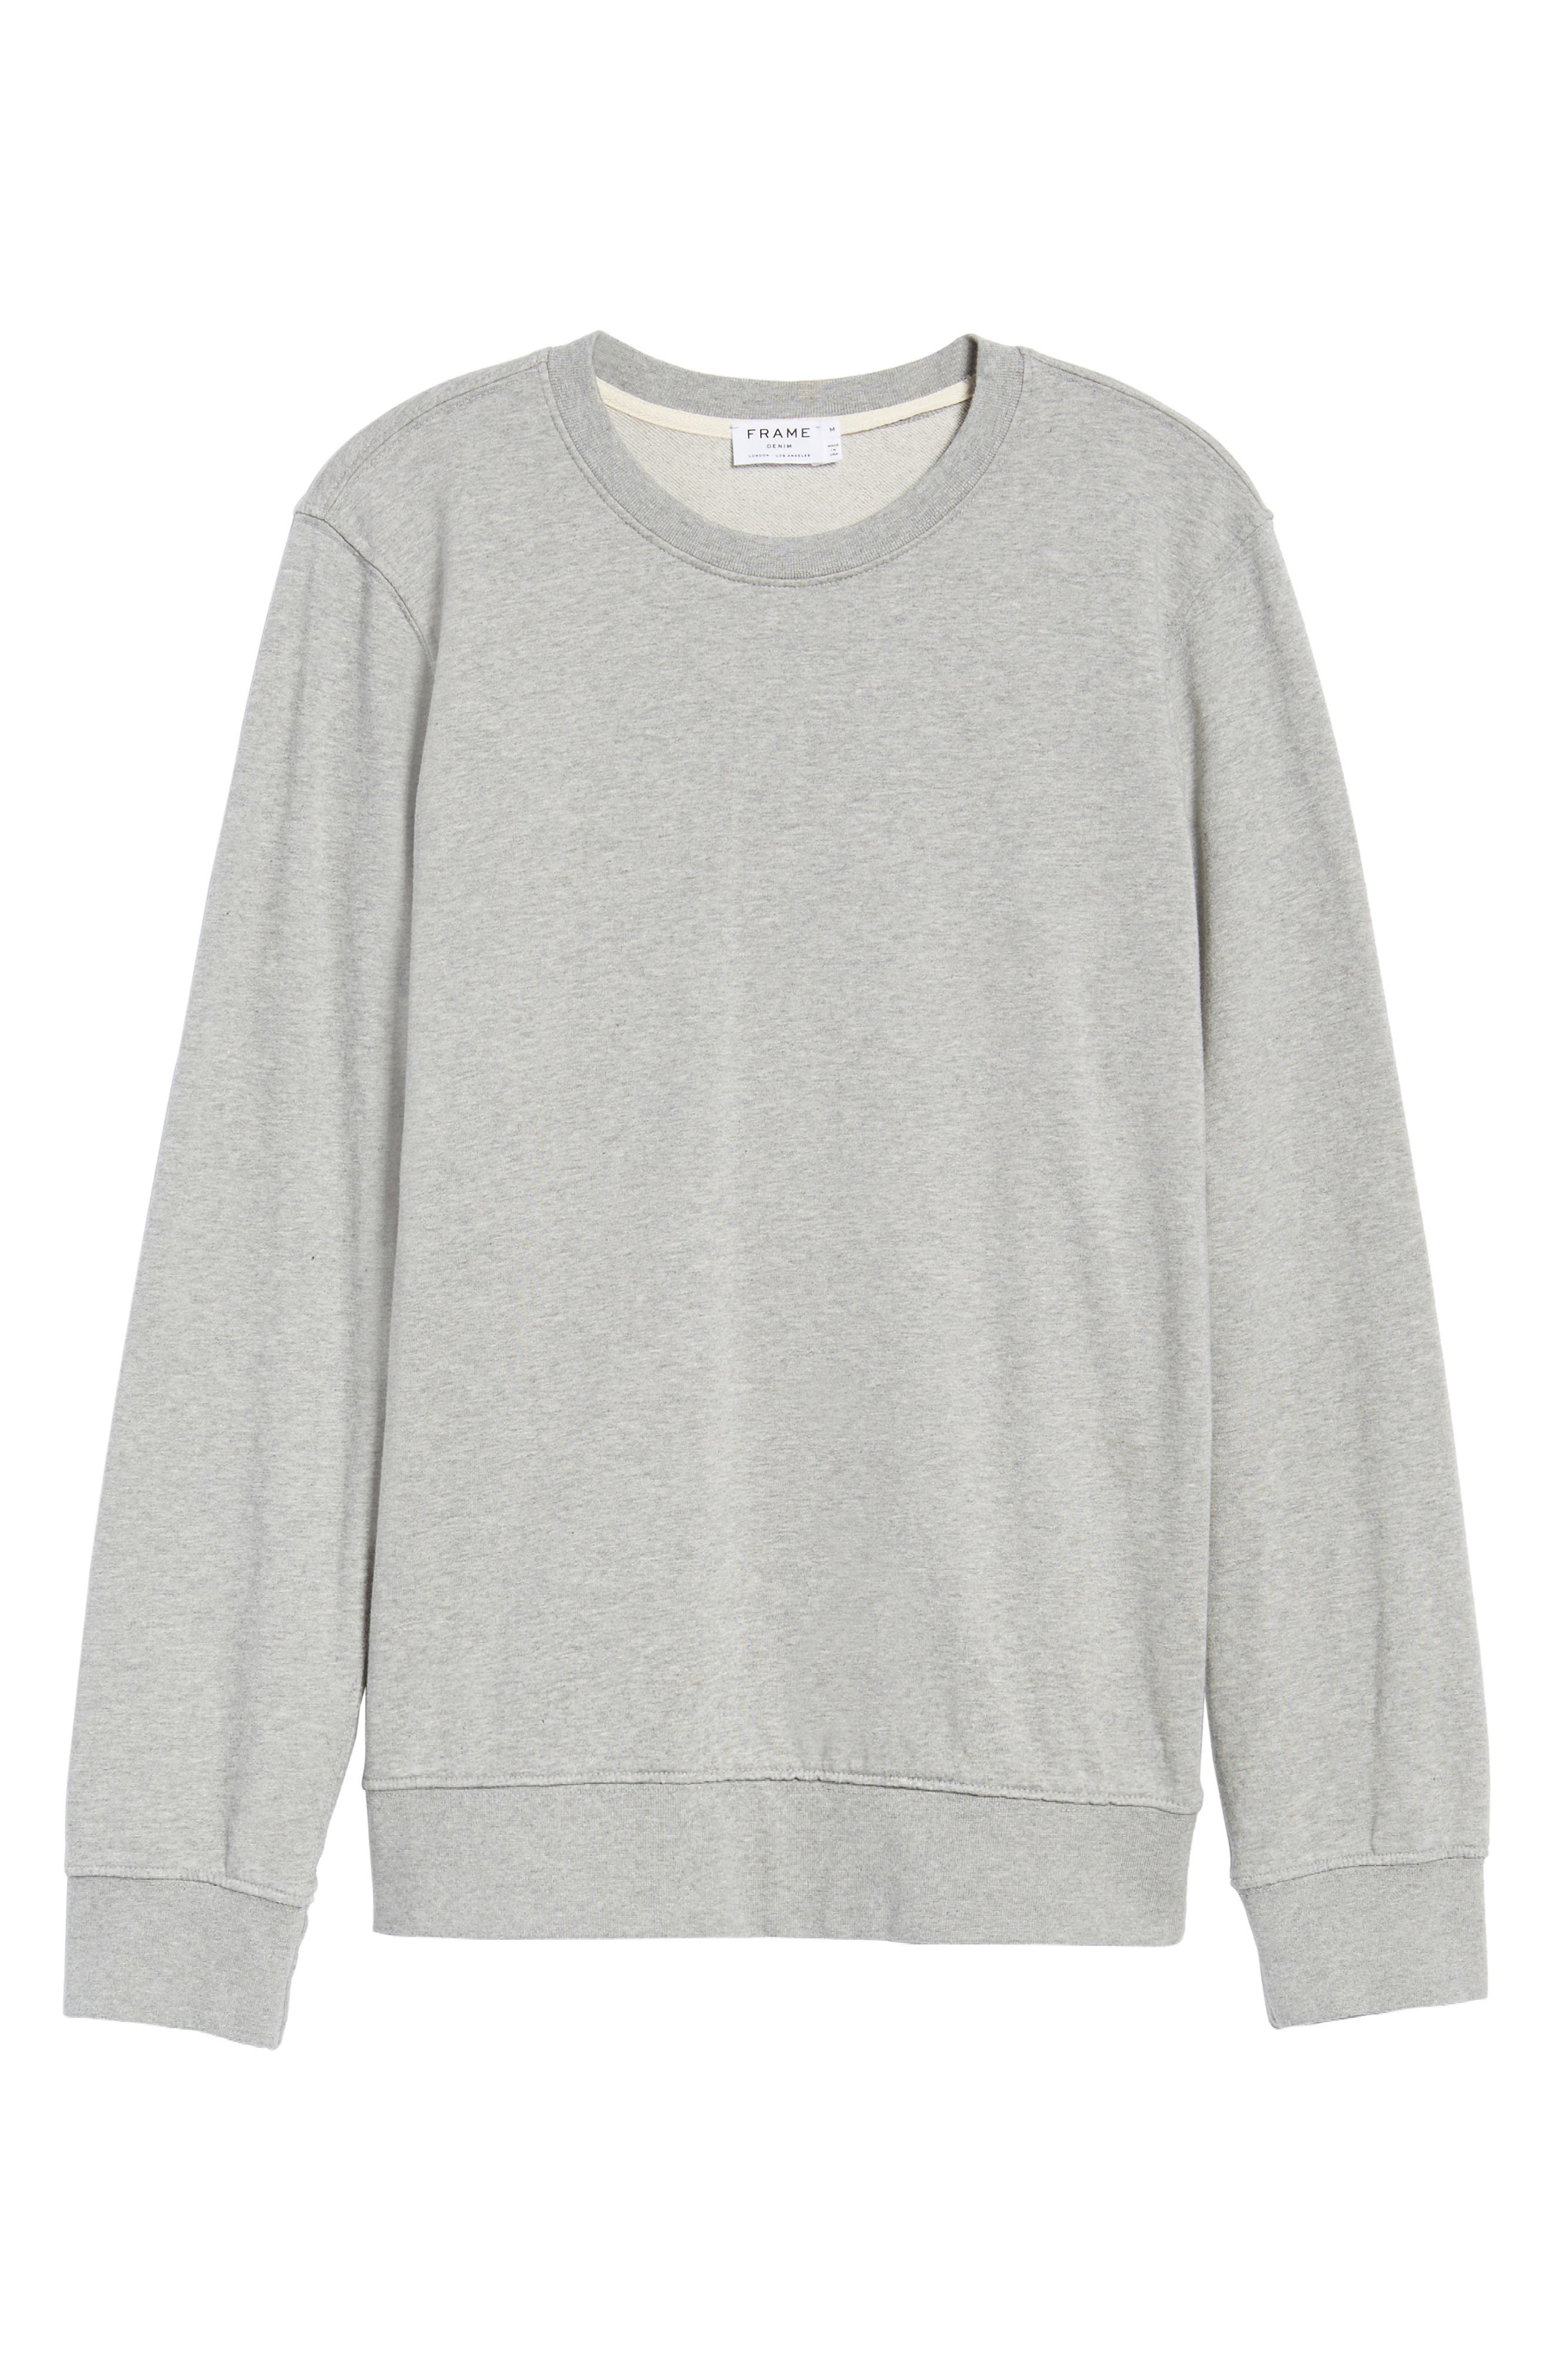 French Terry Sweatshirt,                             Alternate thumbnail 17, color,